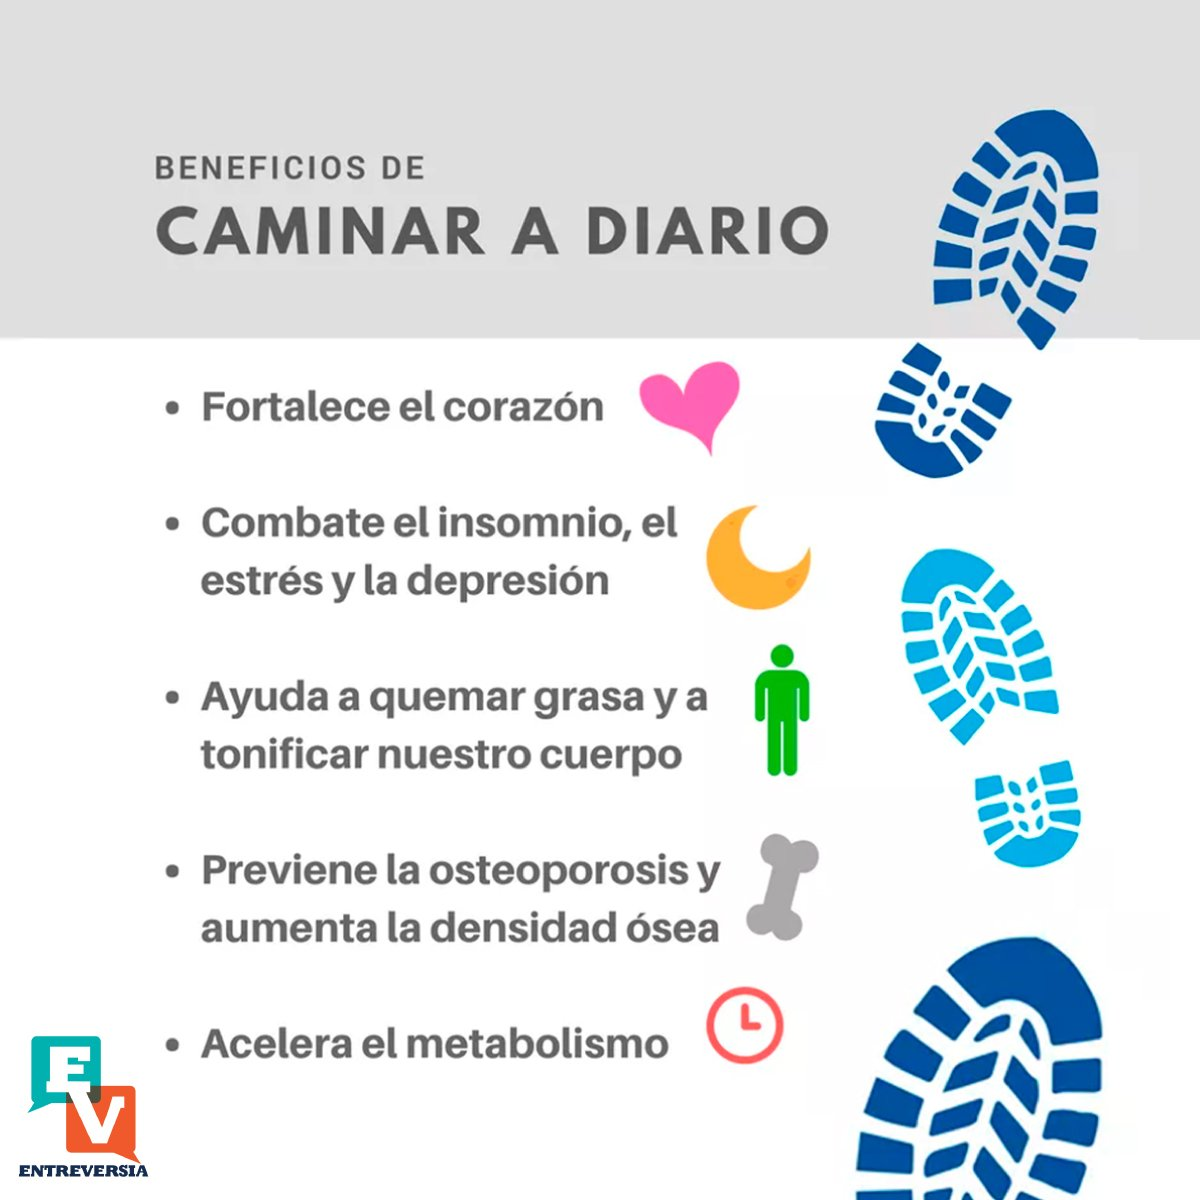 Caminar beneficios